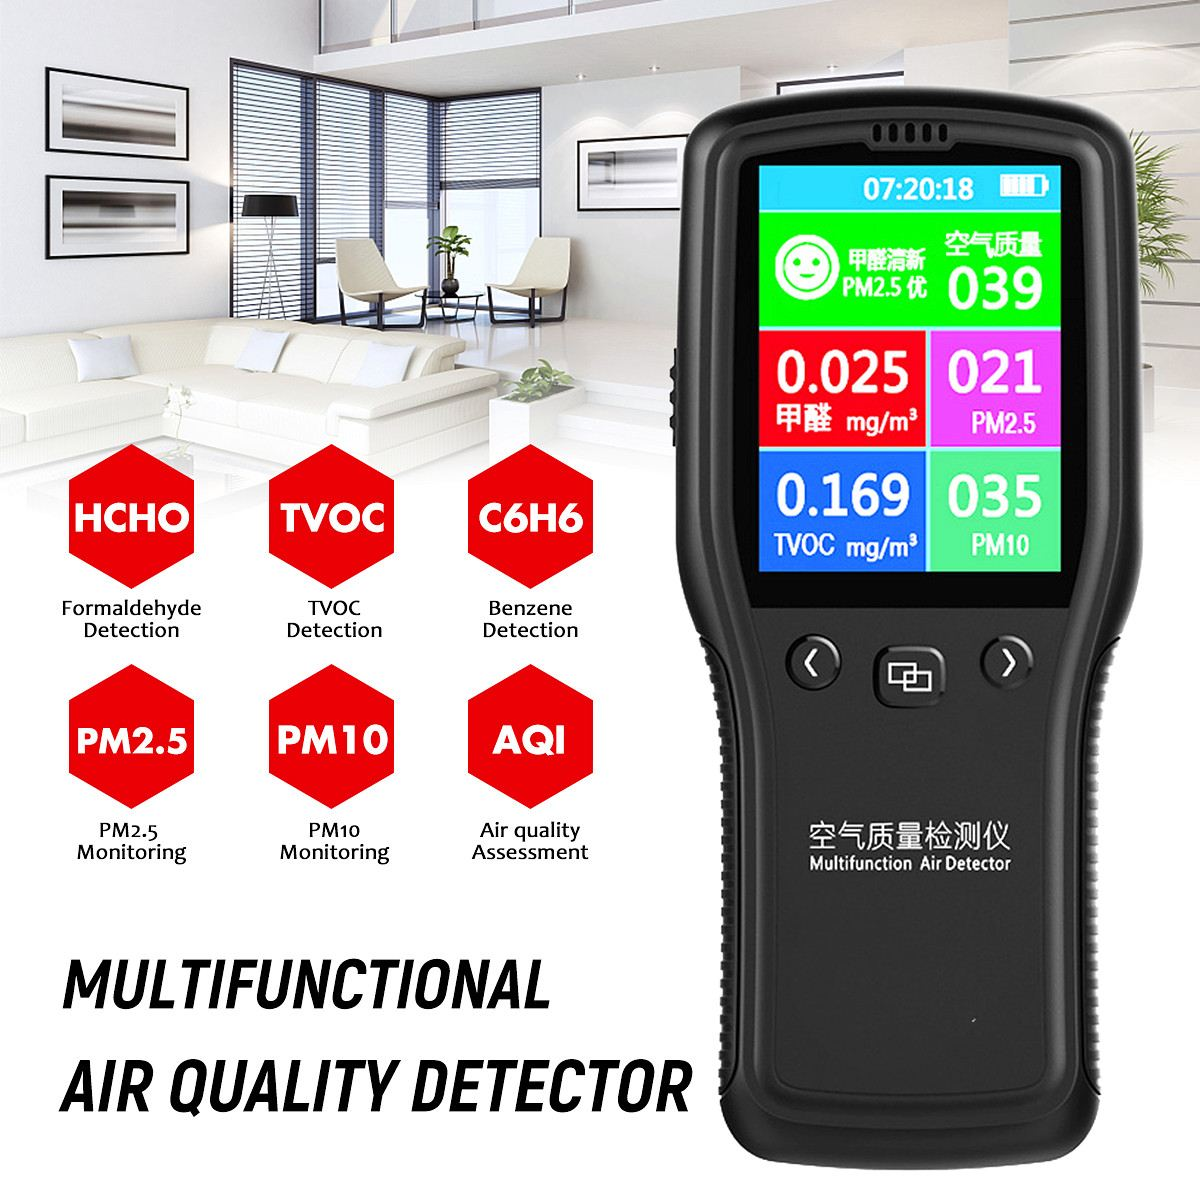 Design; In Konstruktiv Multifunktionale Air Qualität Monitor Pm2.5/10 Hcho Laser Digital Home Air Qualität Detector Analyzer Monitor Aqi Diagnose Werkzeug Novel